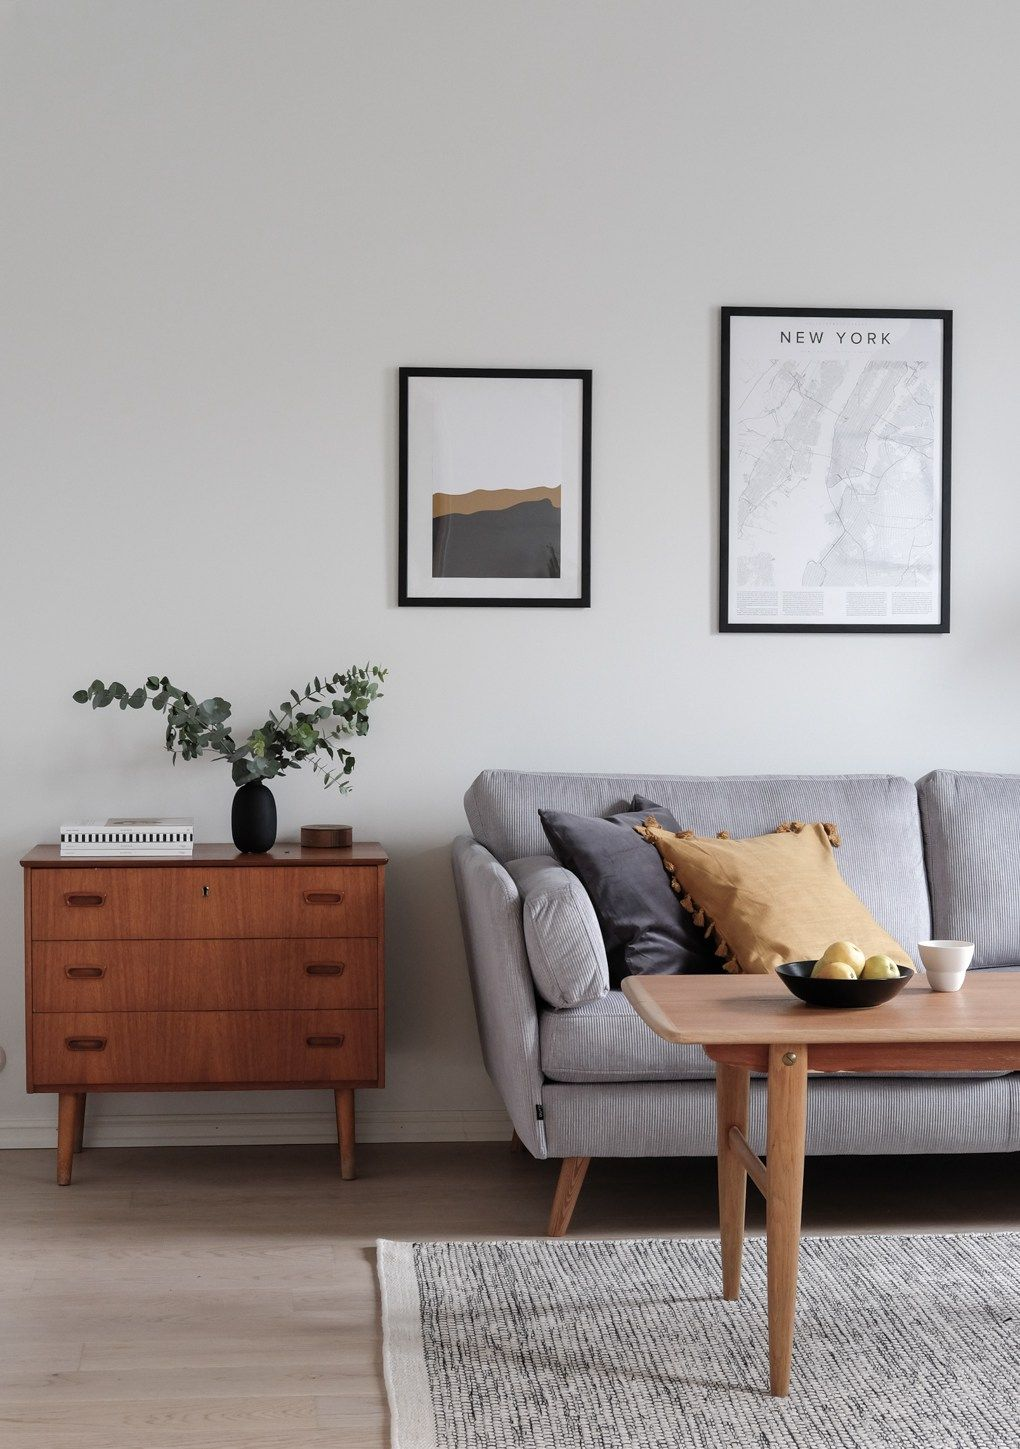 If You Want A Scandinavian Living Room Design, There Are Some Things That  You Should Consider And Implement For This Interior Style.